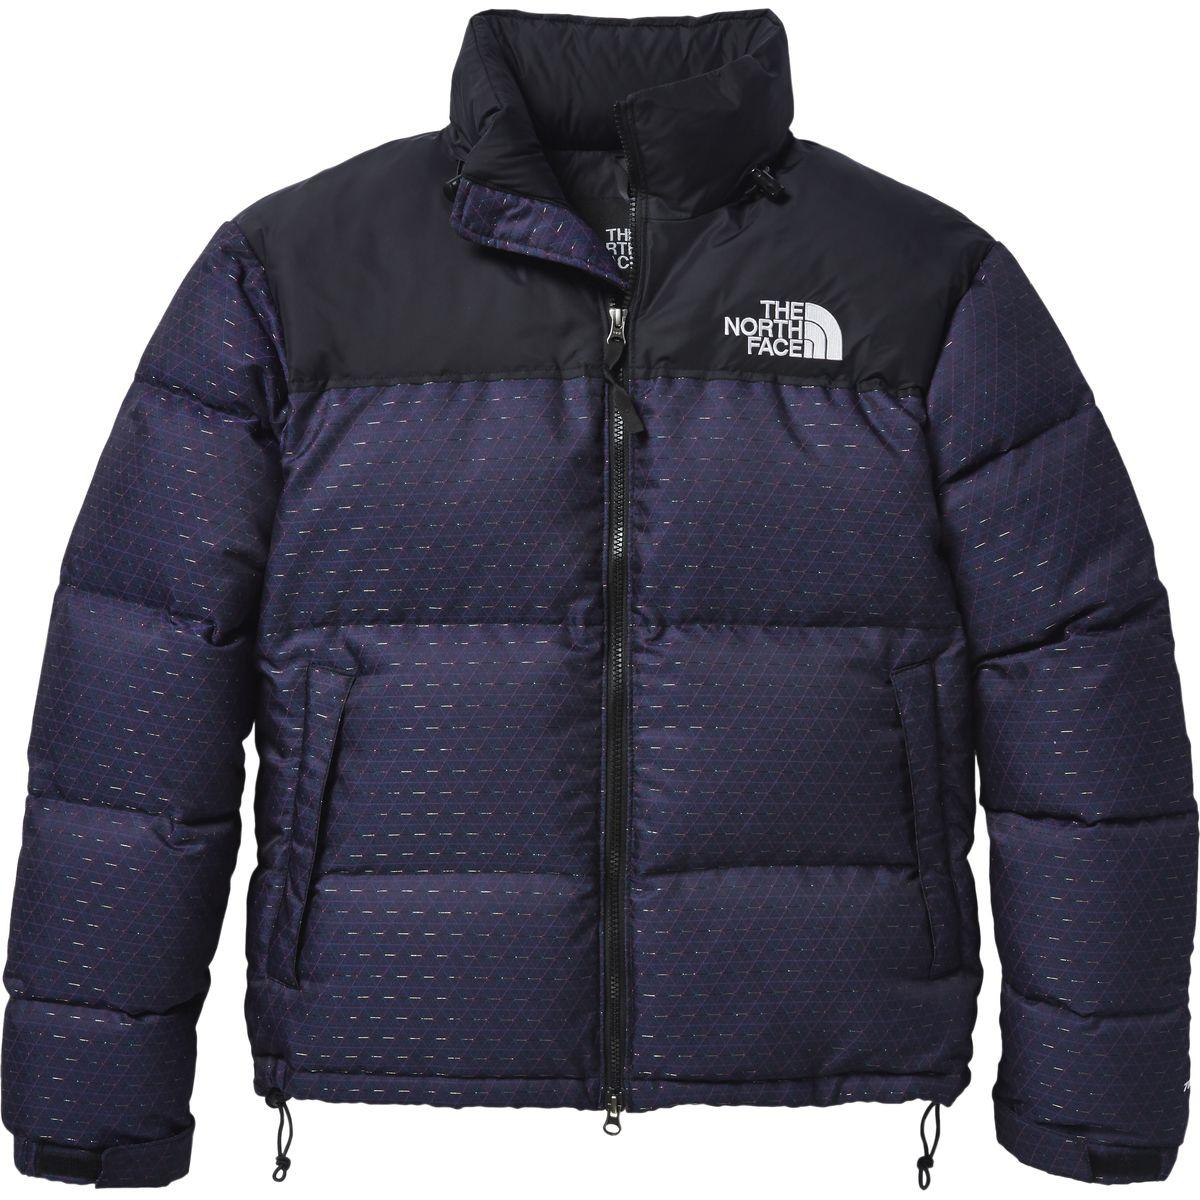 Lyst - The North Face 1996 Retro Nuptse Jacket in Blue 25f3179c7